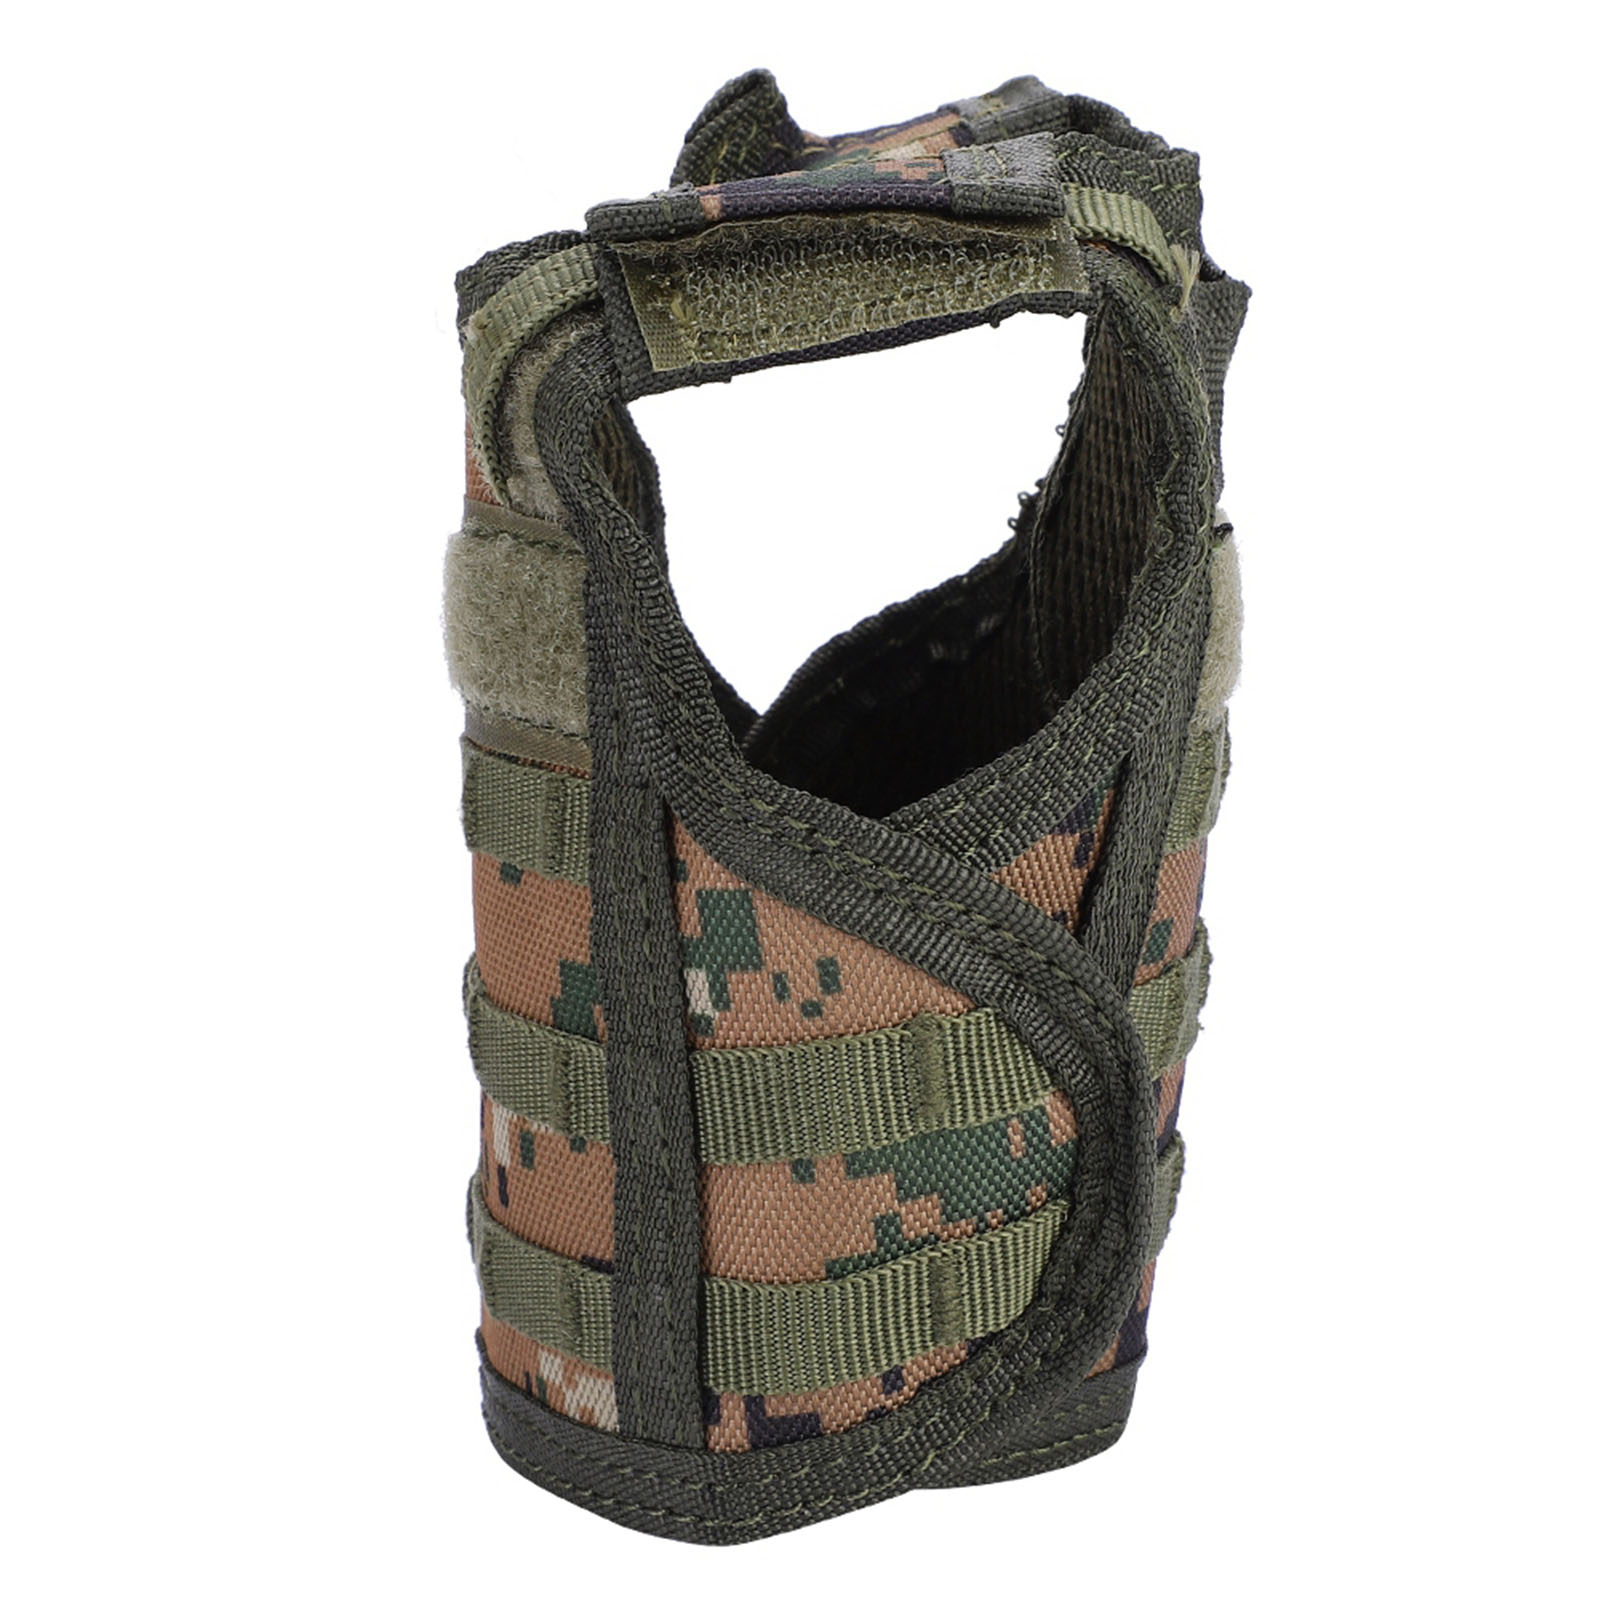 Mini-Military-Tactic-Beer-Water-Bottle-Can-Vest-Carrier-Holder-Beverage-Cover thumbnail 30